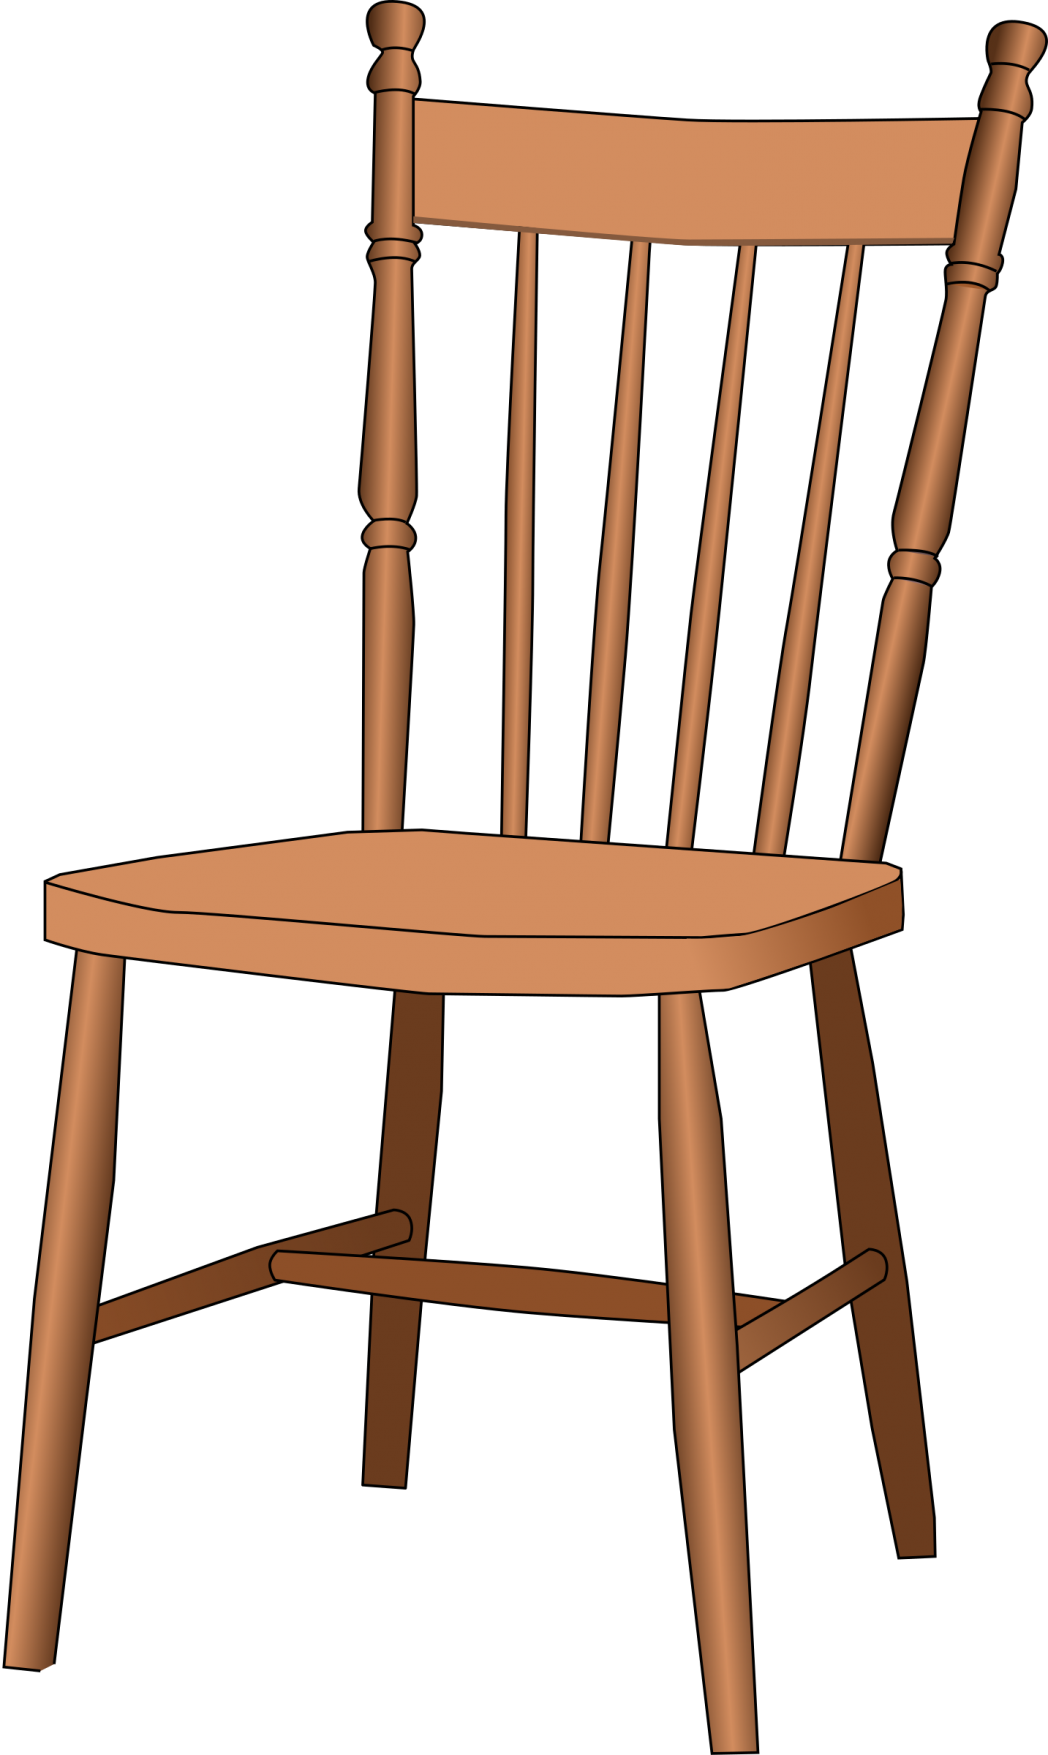 Clipart chair kitchen chair, Clipart chair kitchen chair.